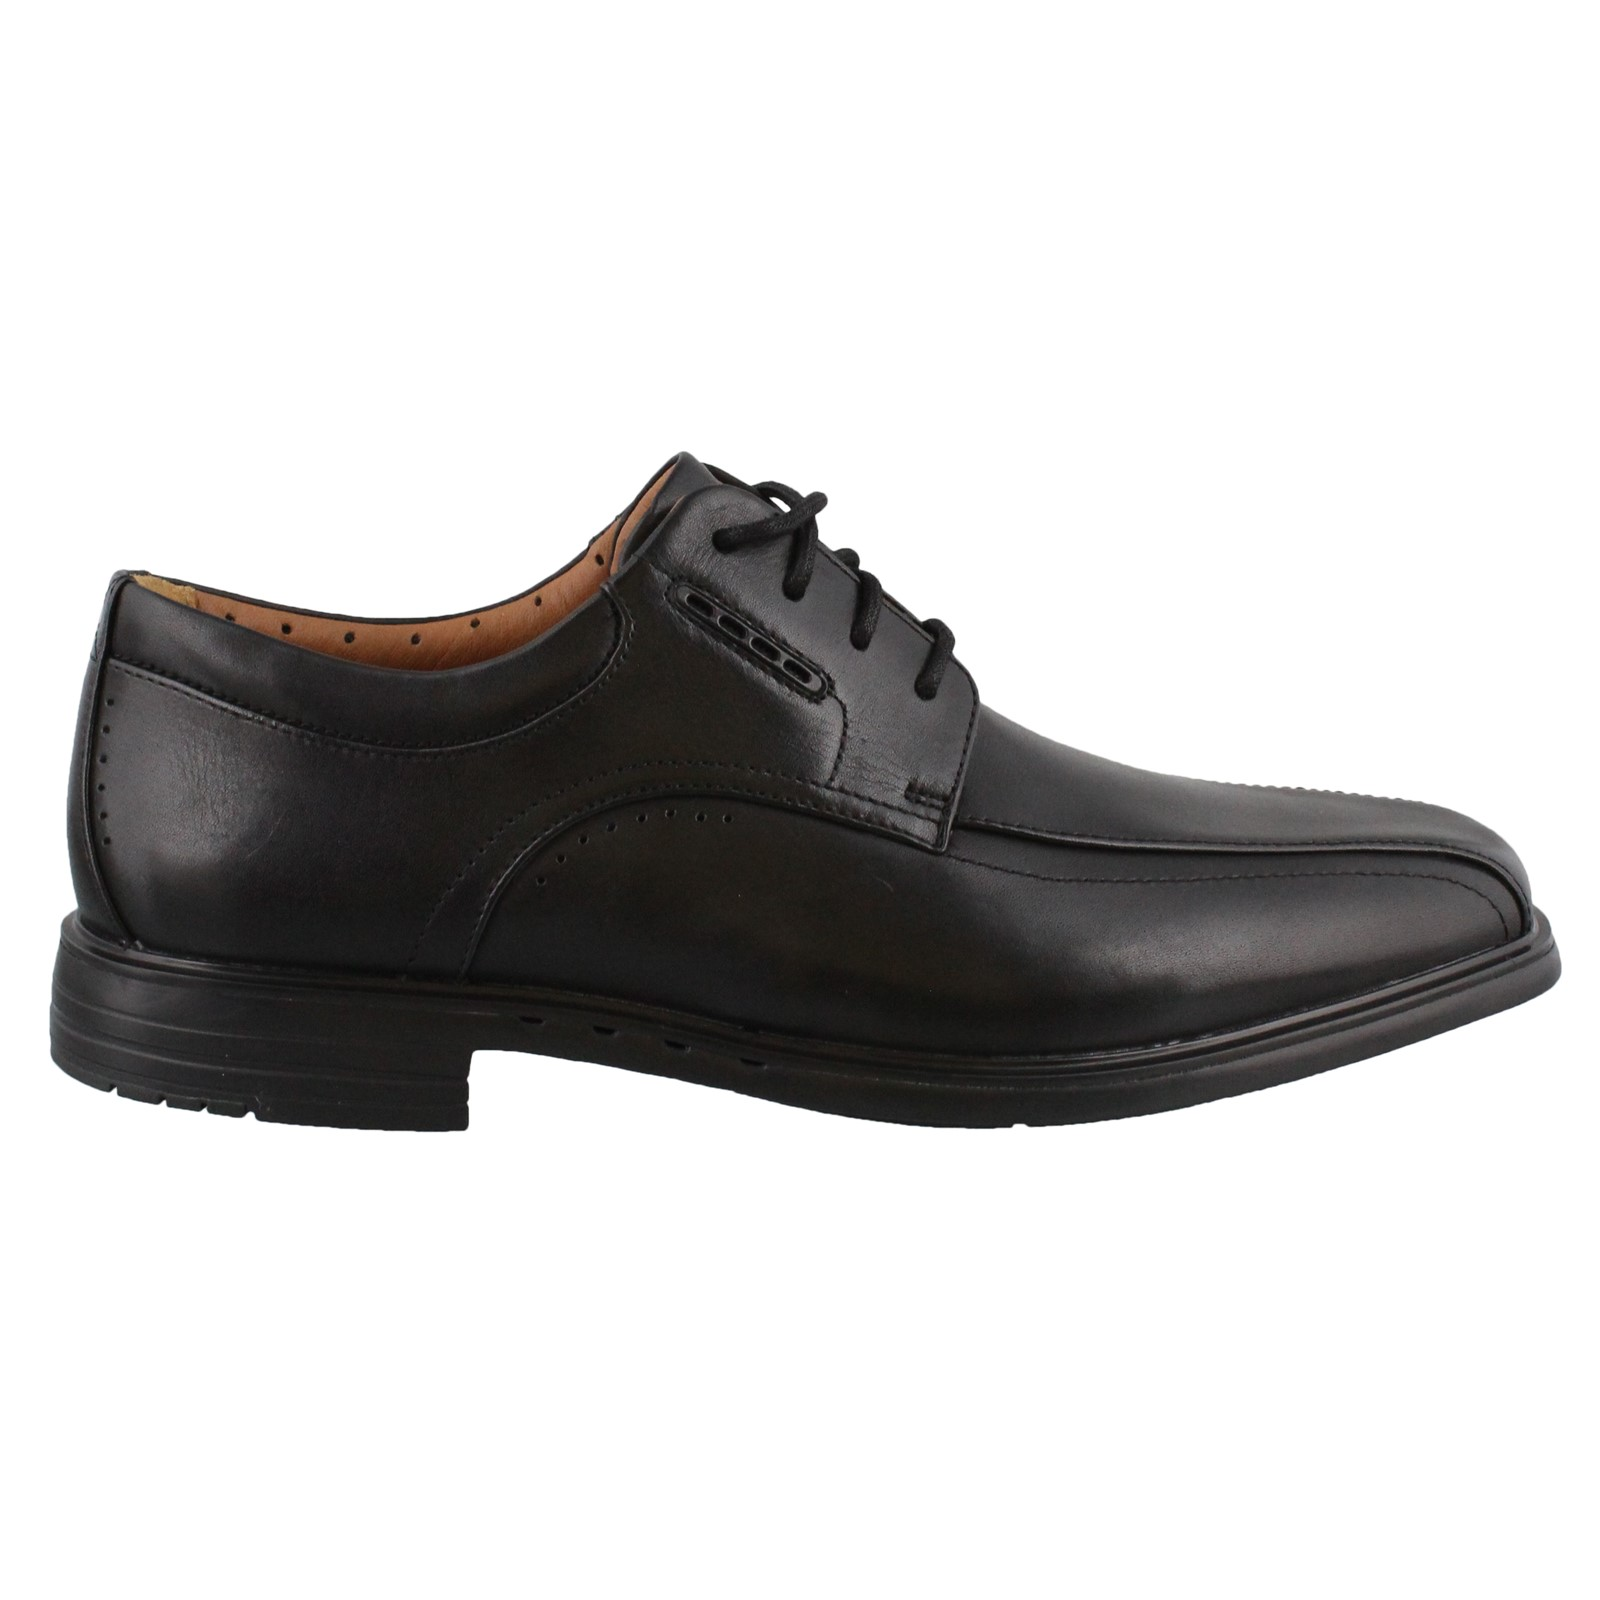 Men's Clarks, Unkenneth Way Lace up Shoes